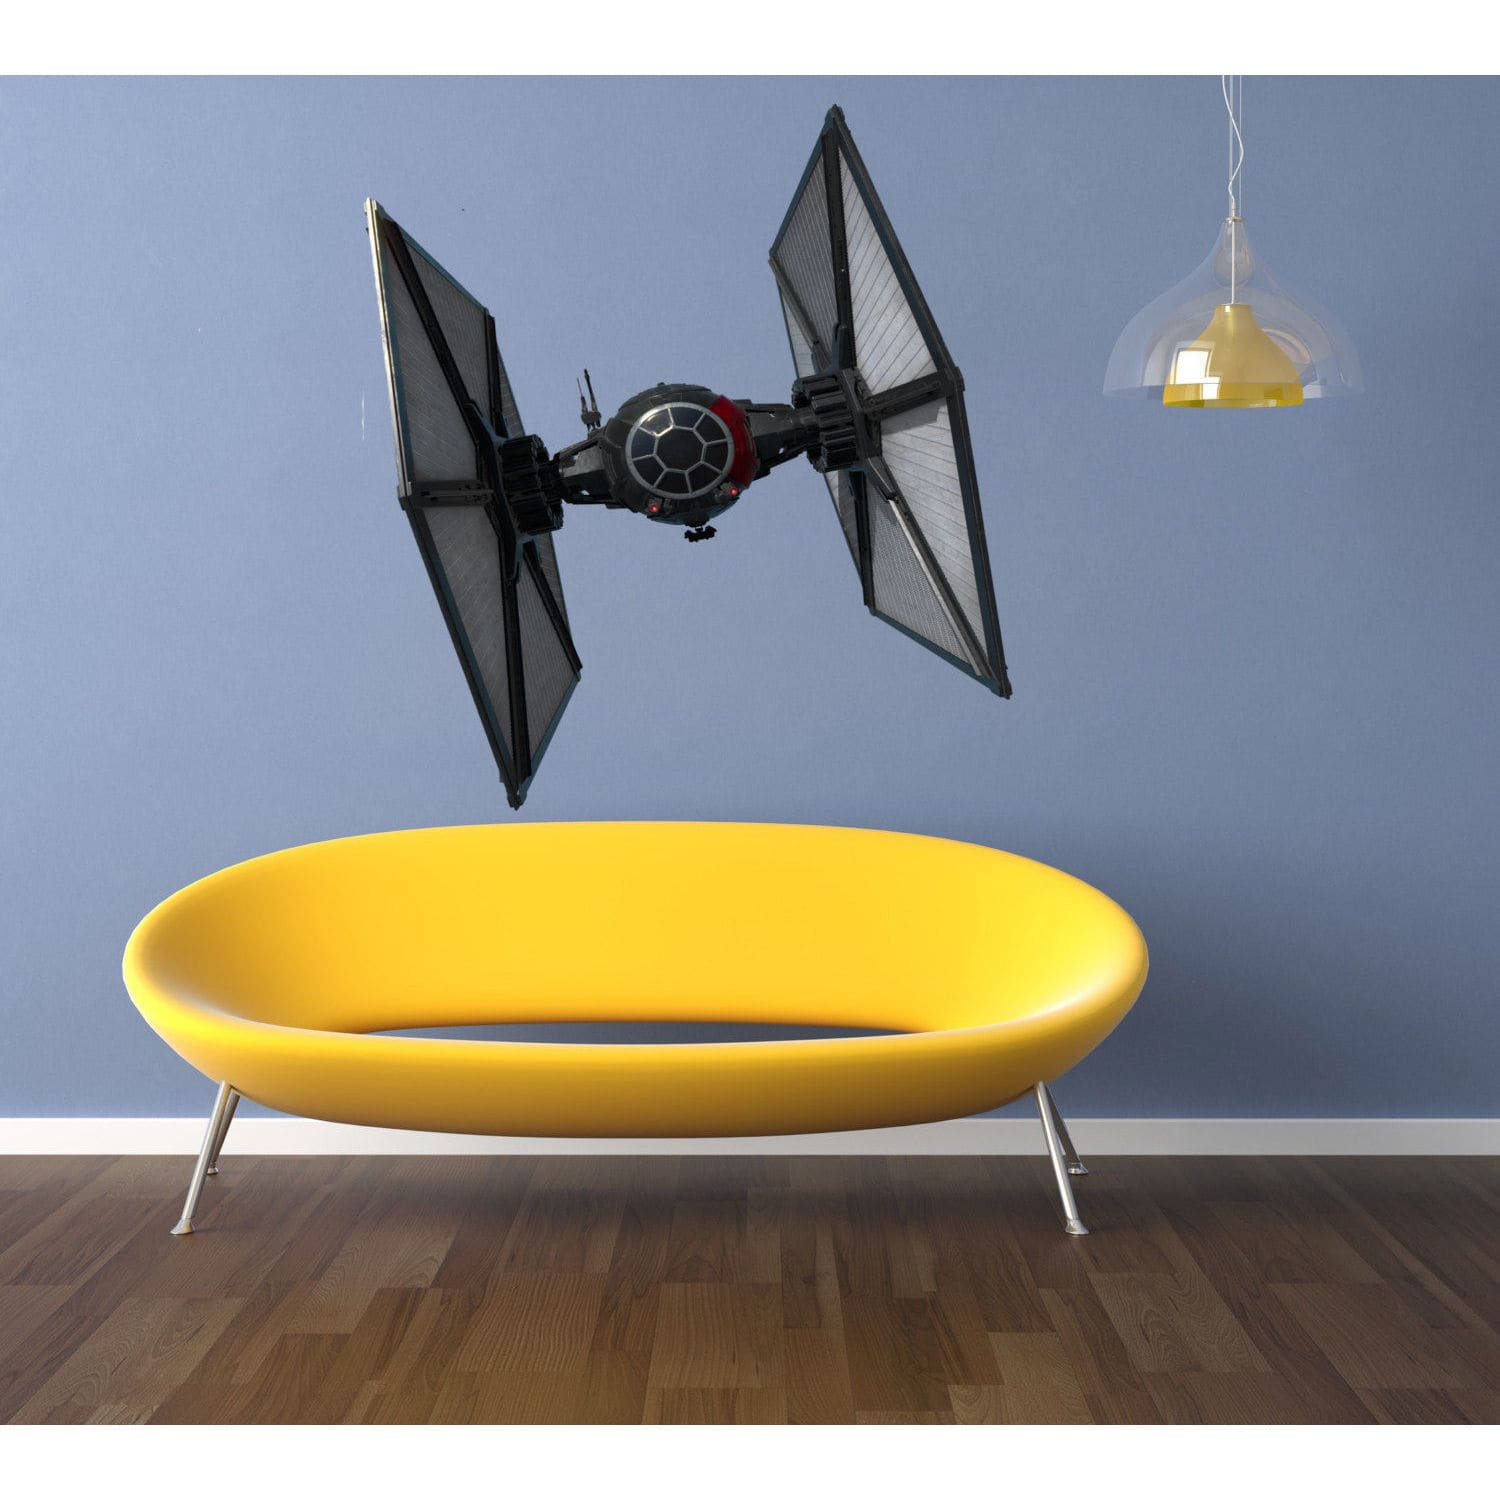 Stickalz llc Tie Fighter Full Color Decal, Full color sticker, colored Star Wars Sticker Decal size 48x57